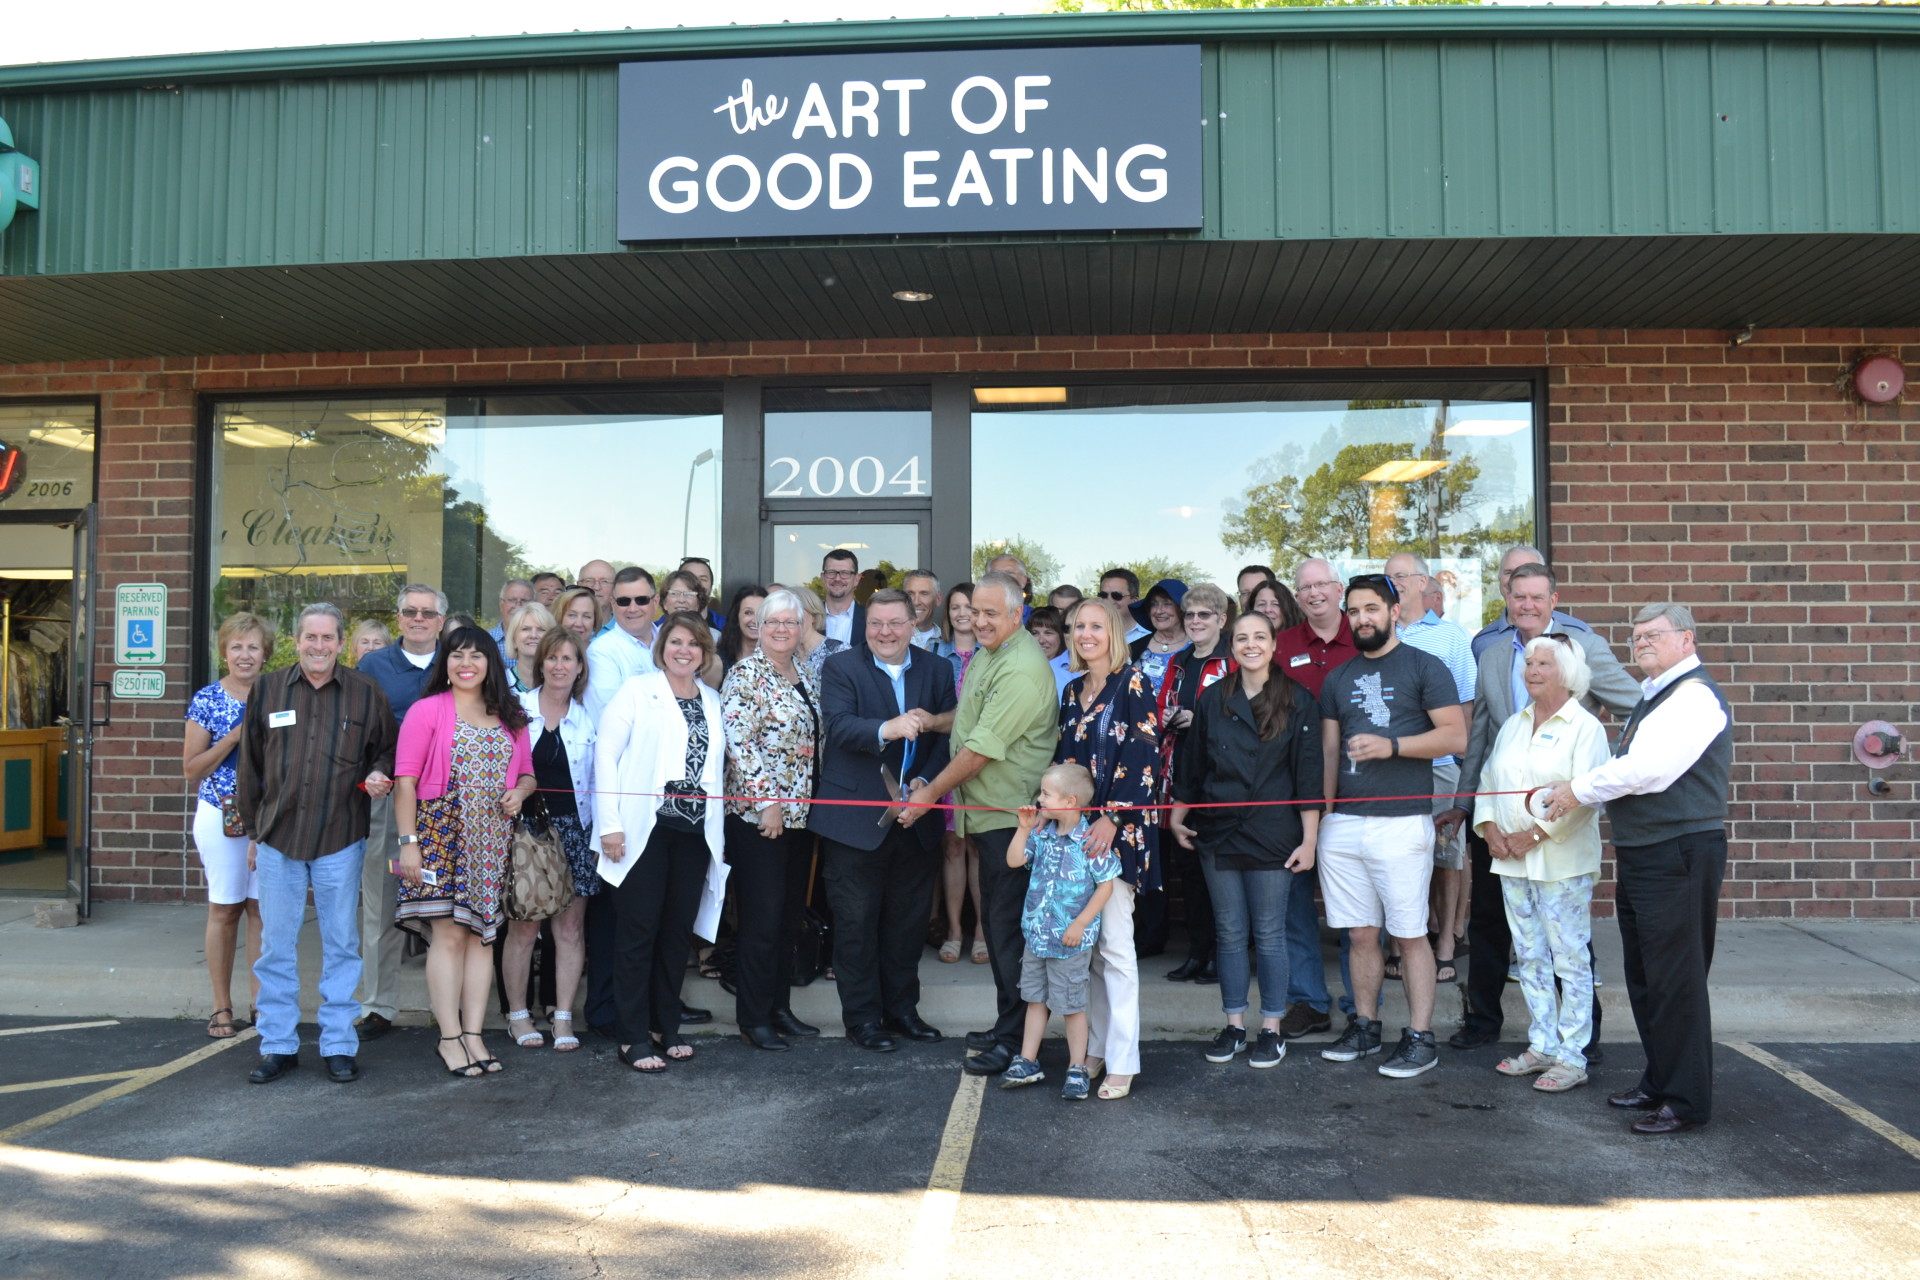 The-Art-of-Good-Eating-Ribbon-Cutting.JPG-w1920.jpg